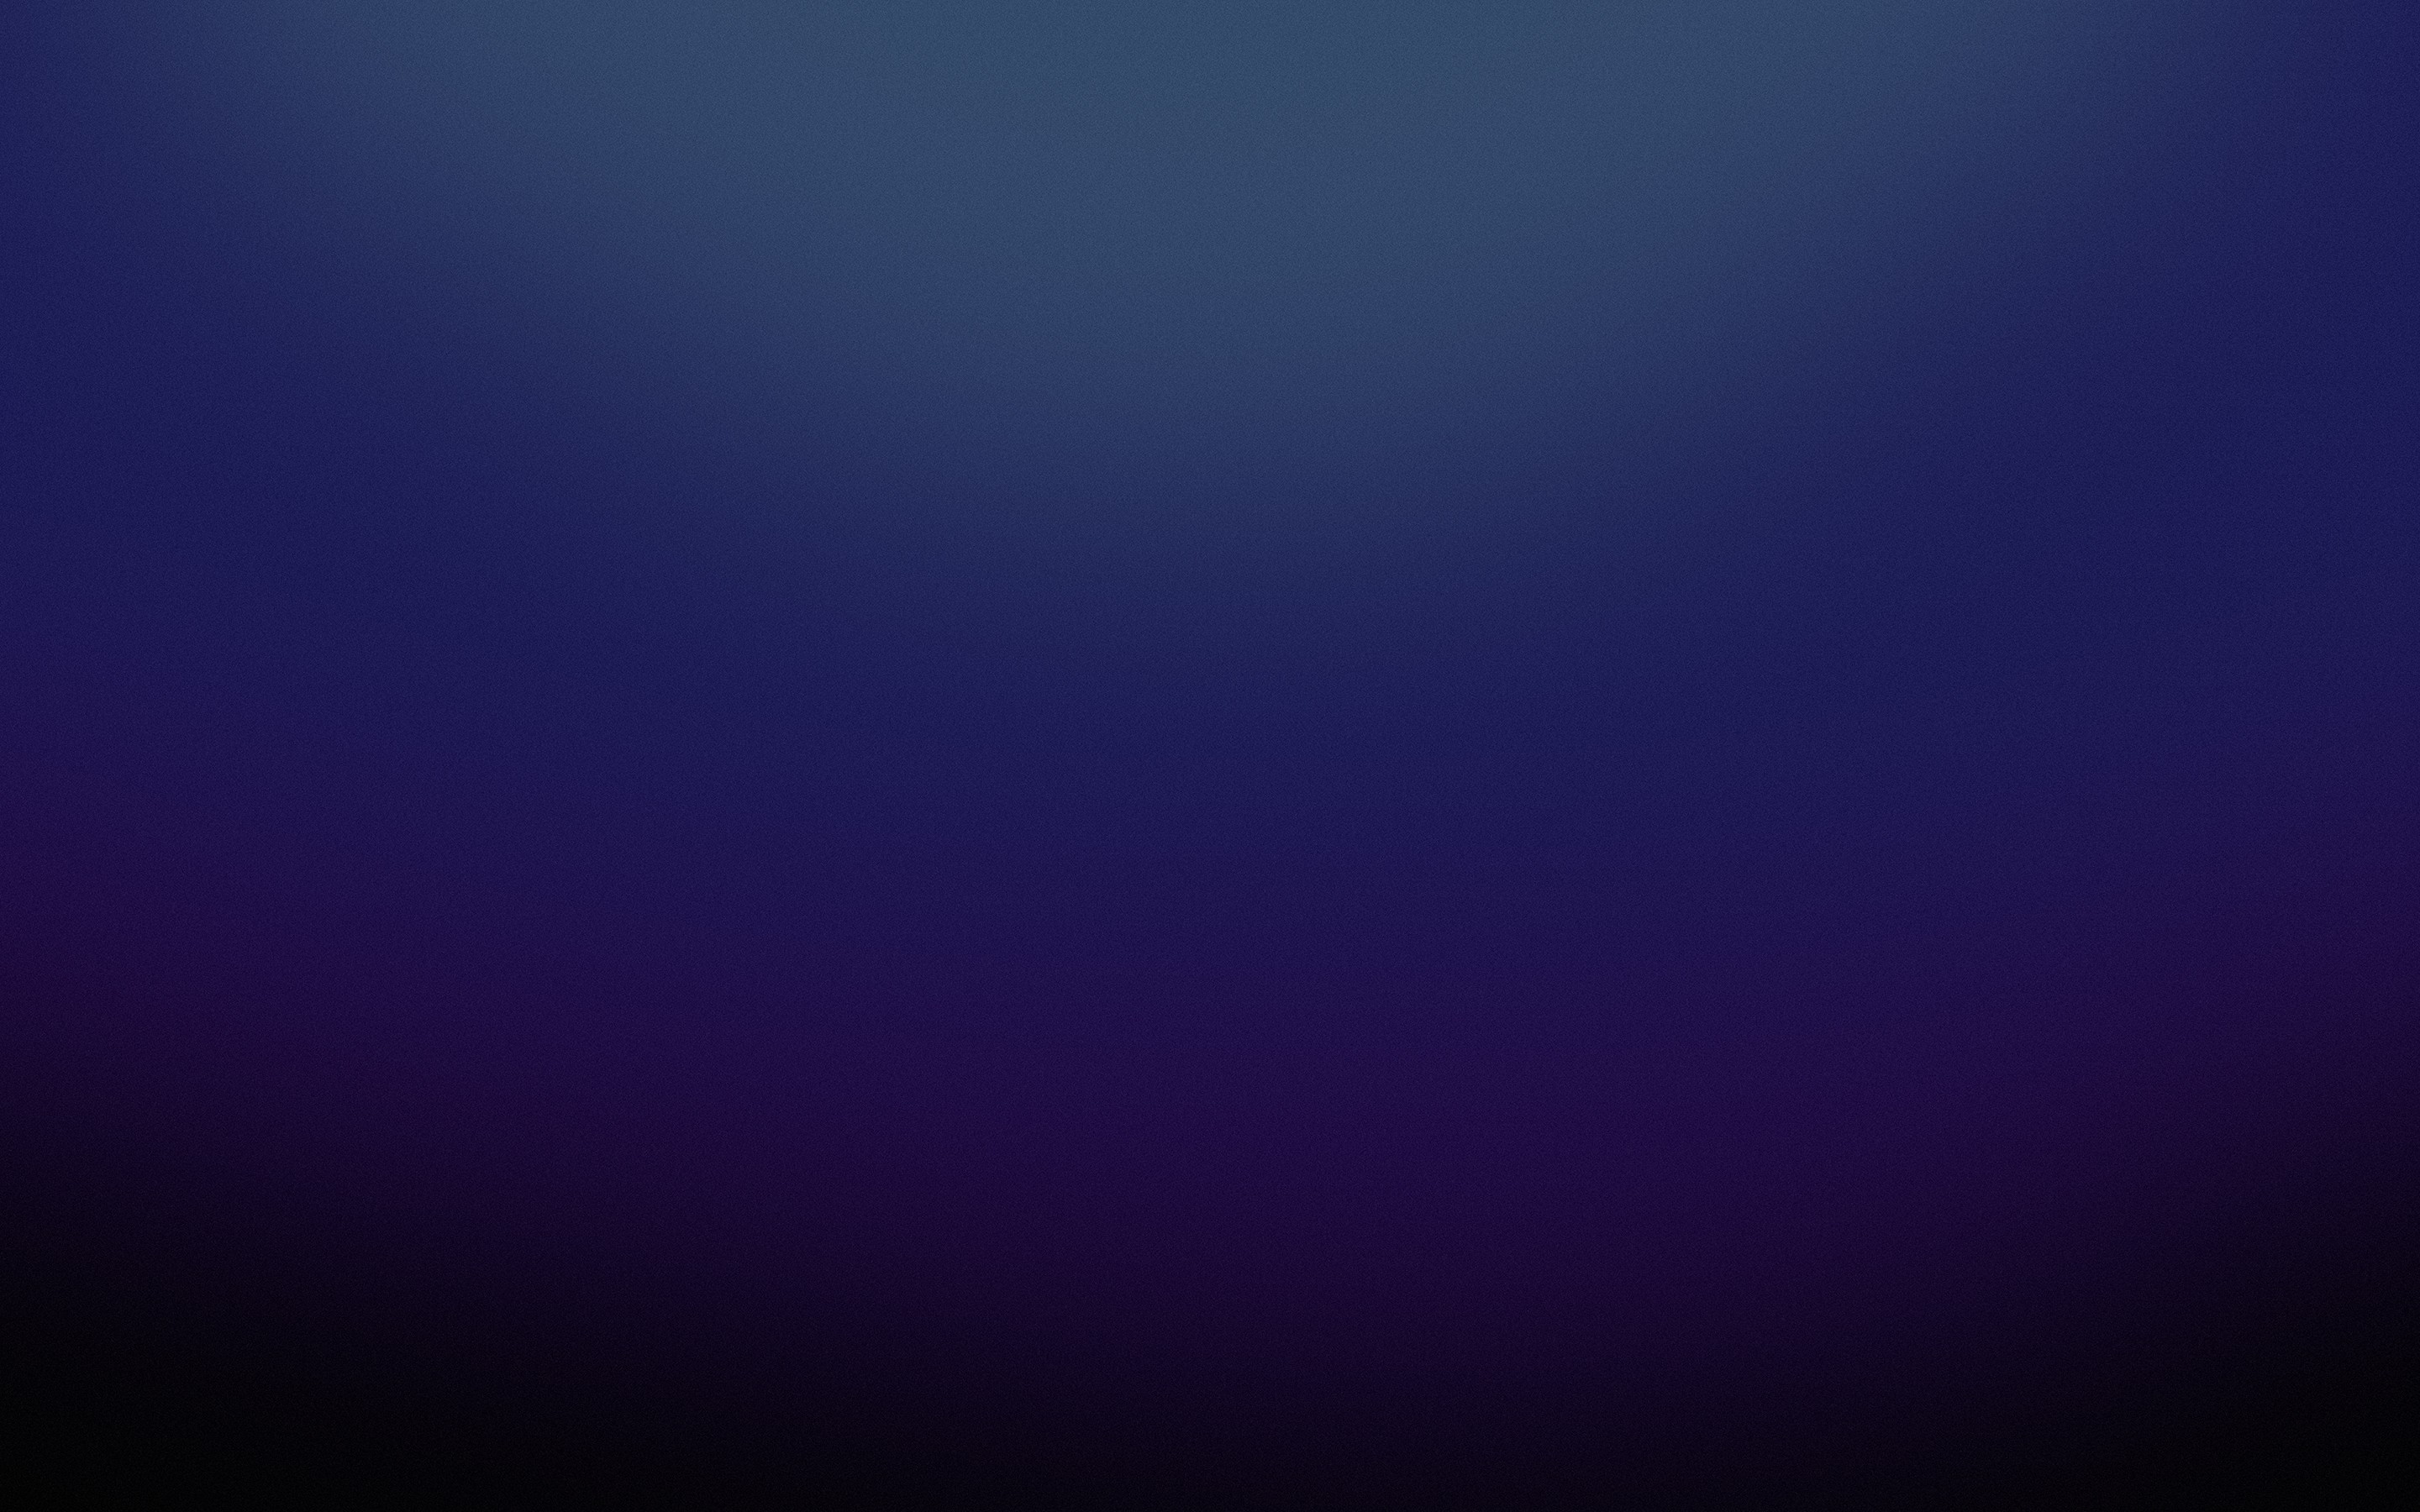 Blue Wallpaper Background Android